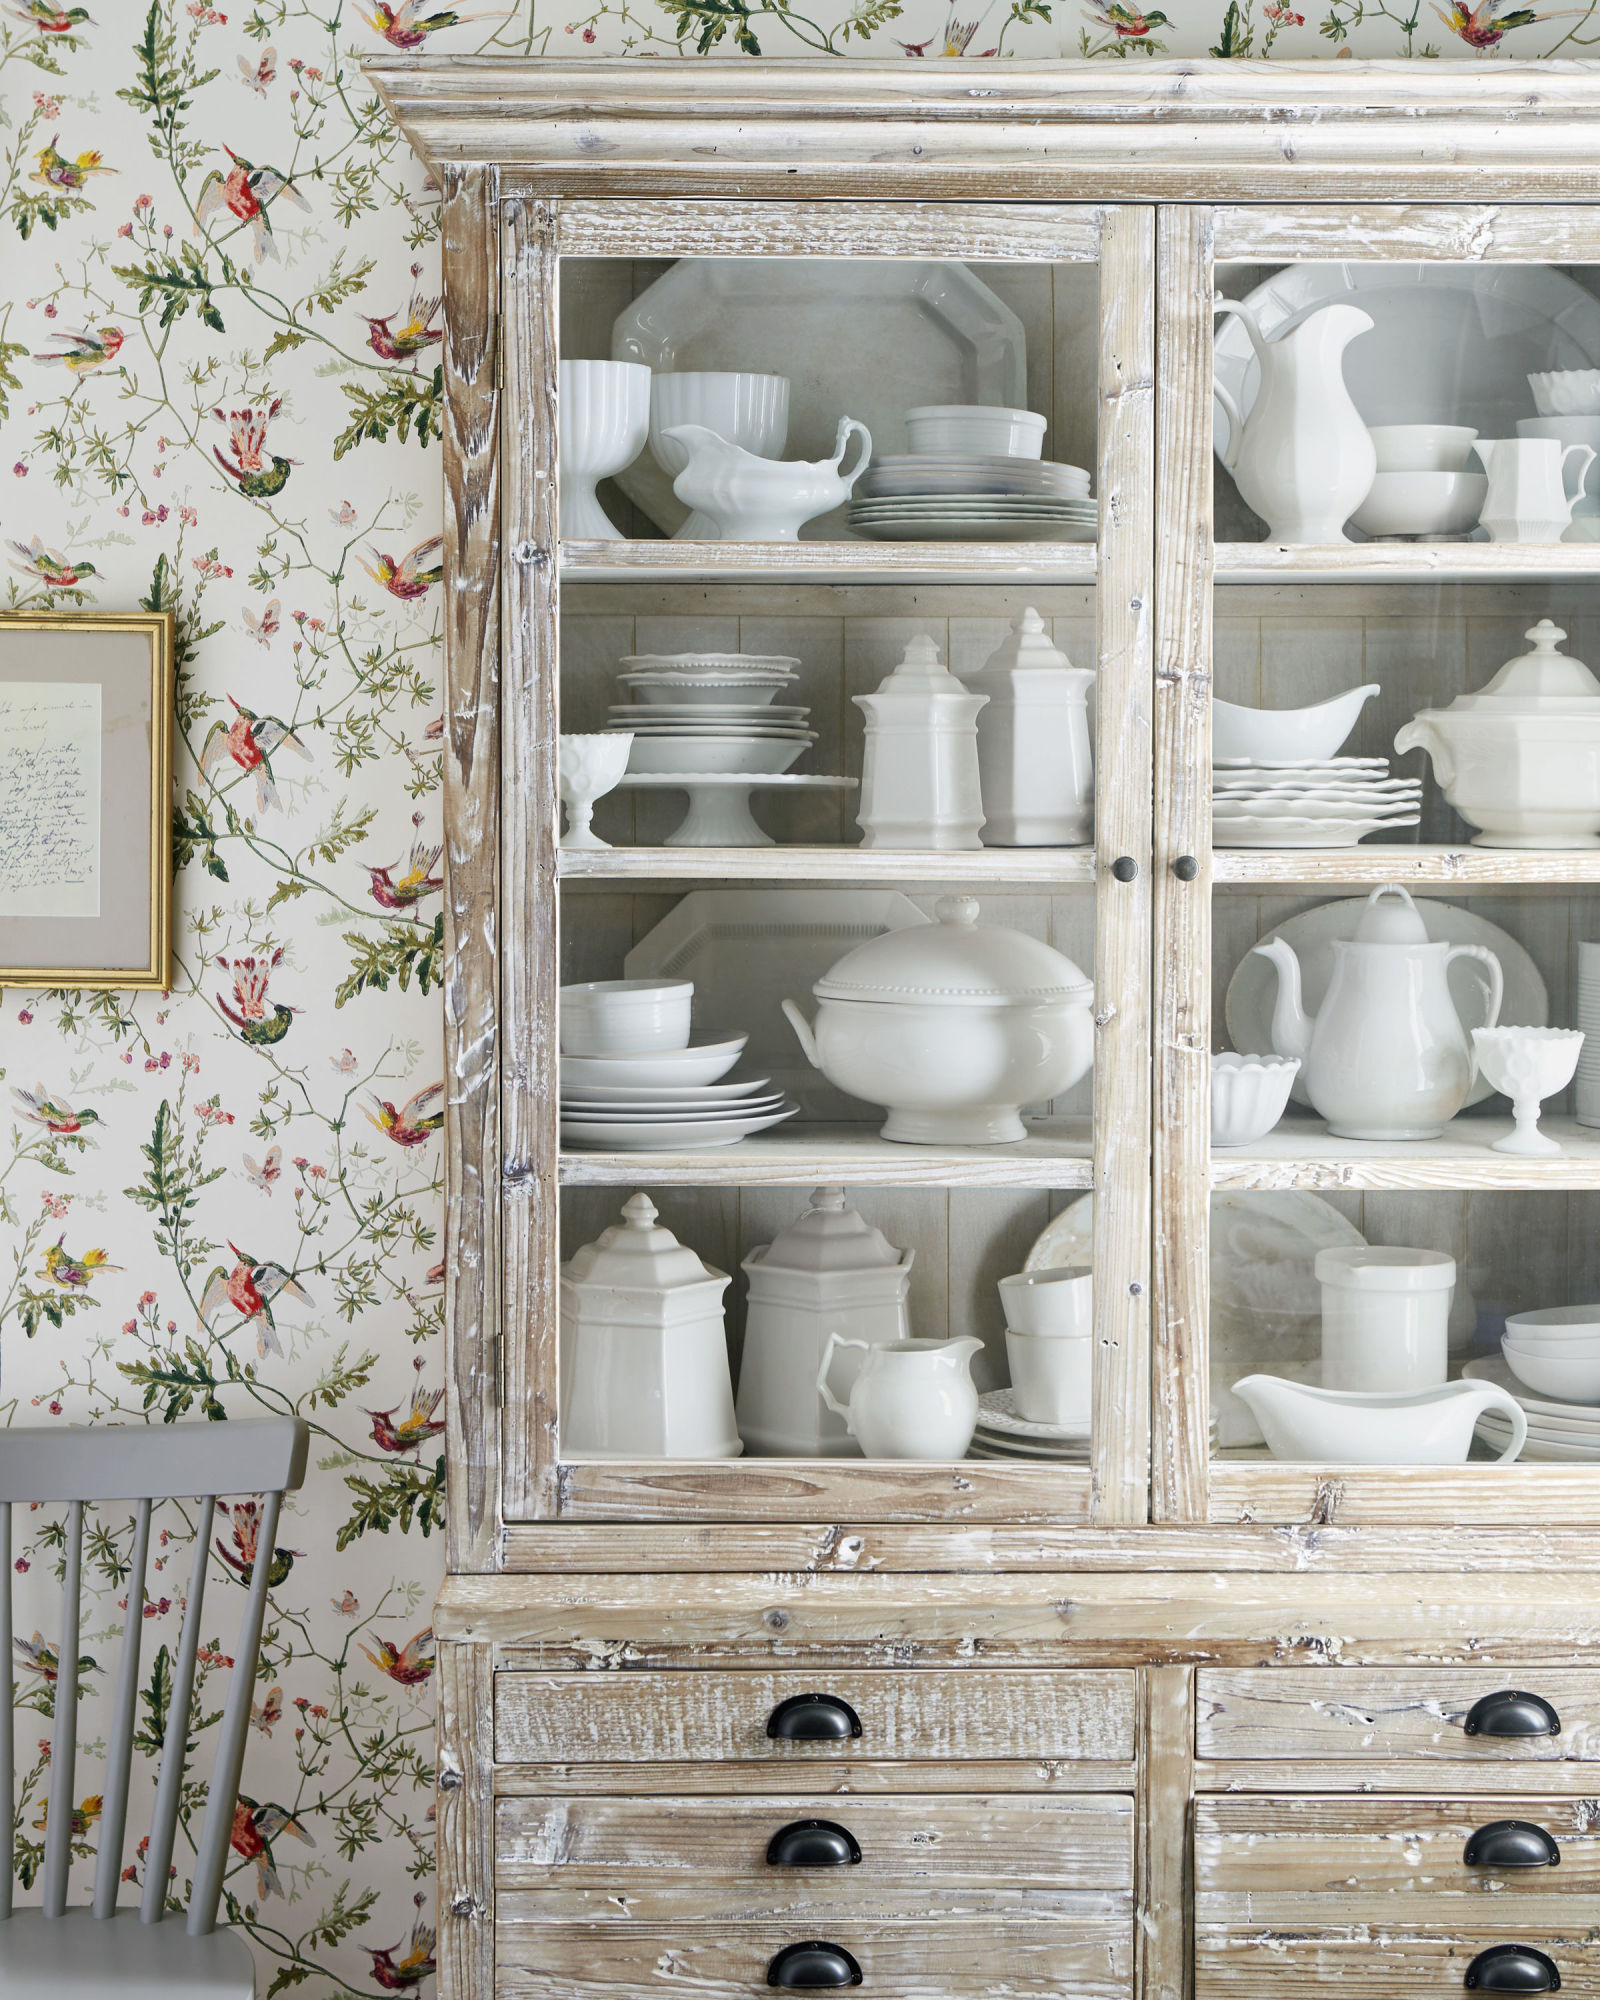 The Decorating Store: Where Do You Store Your Dishes?